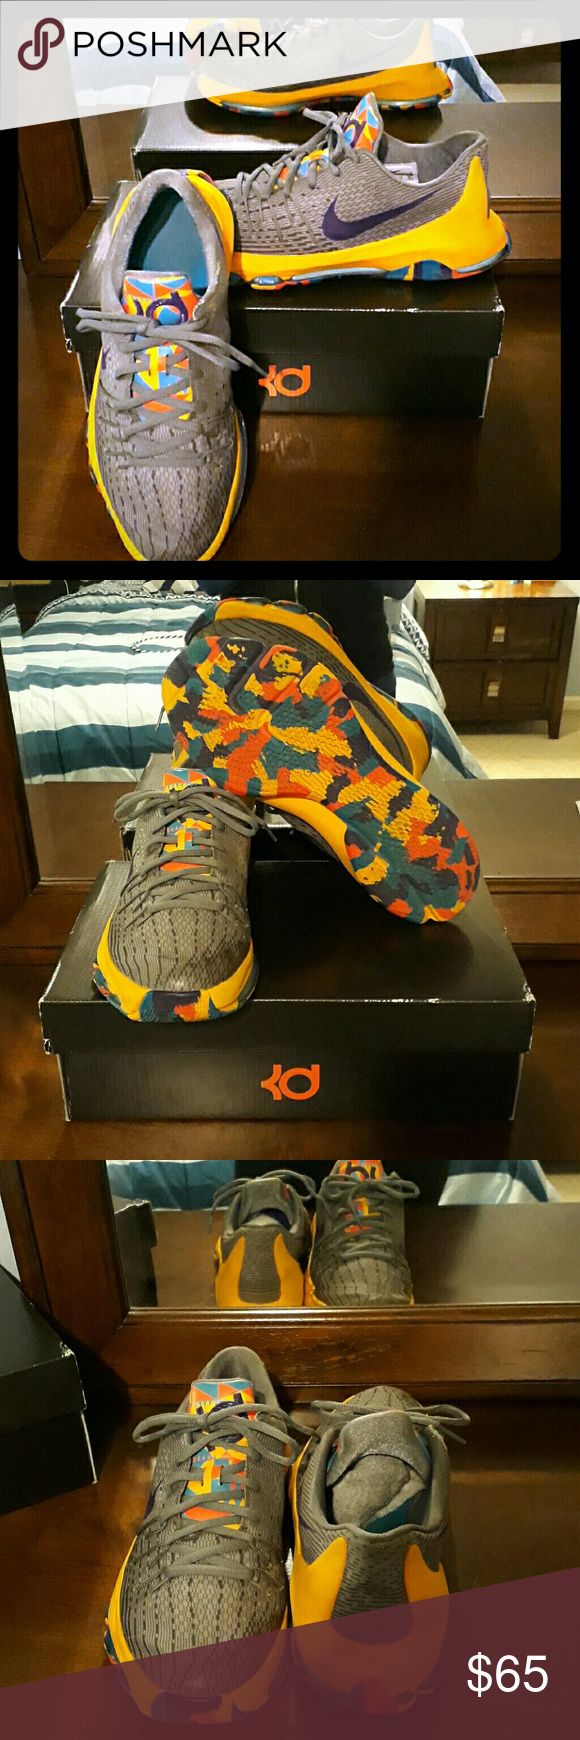 KD 8- Kevin Durant- Size 7 with Box KD8 rare color way. Prince George. Gently used. Minor fraying but fixed by shoe repair person. Nike Shoes Sneakers